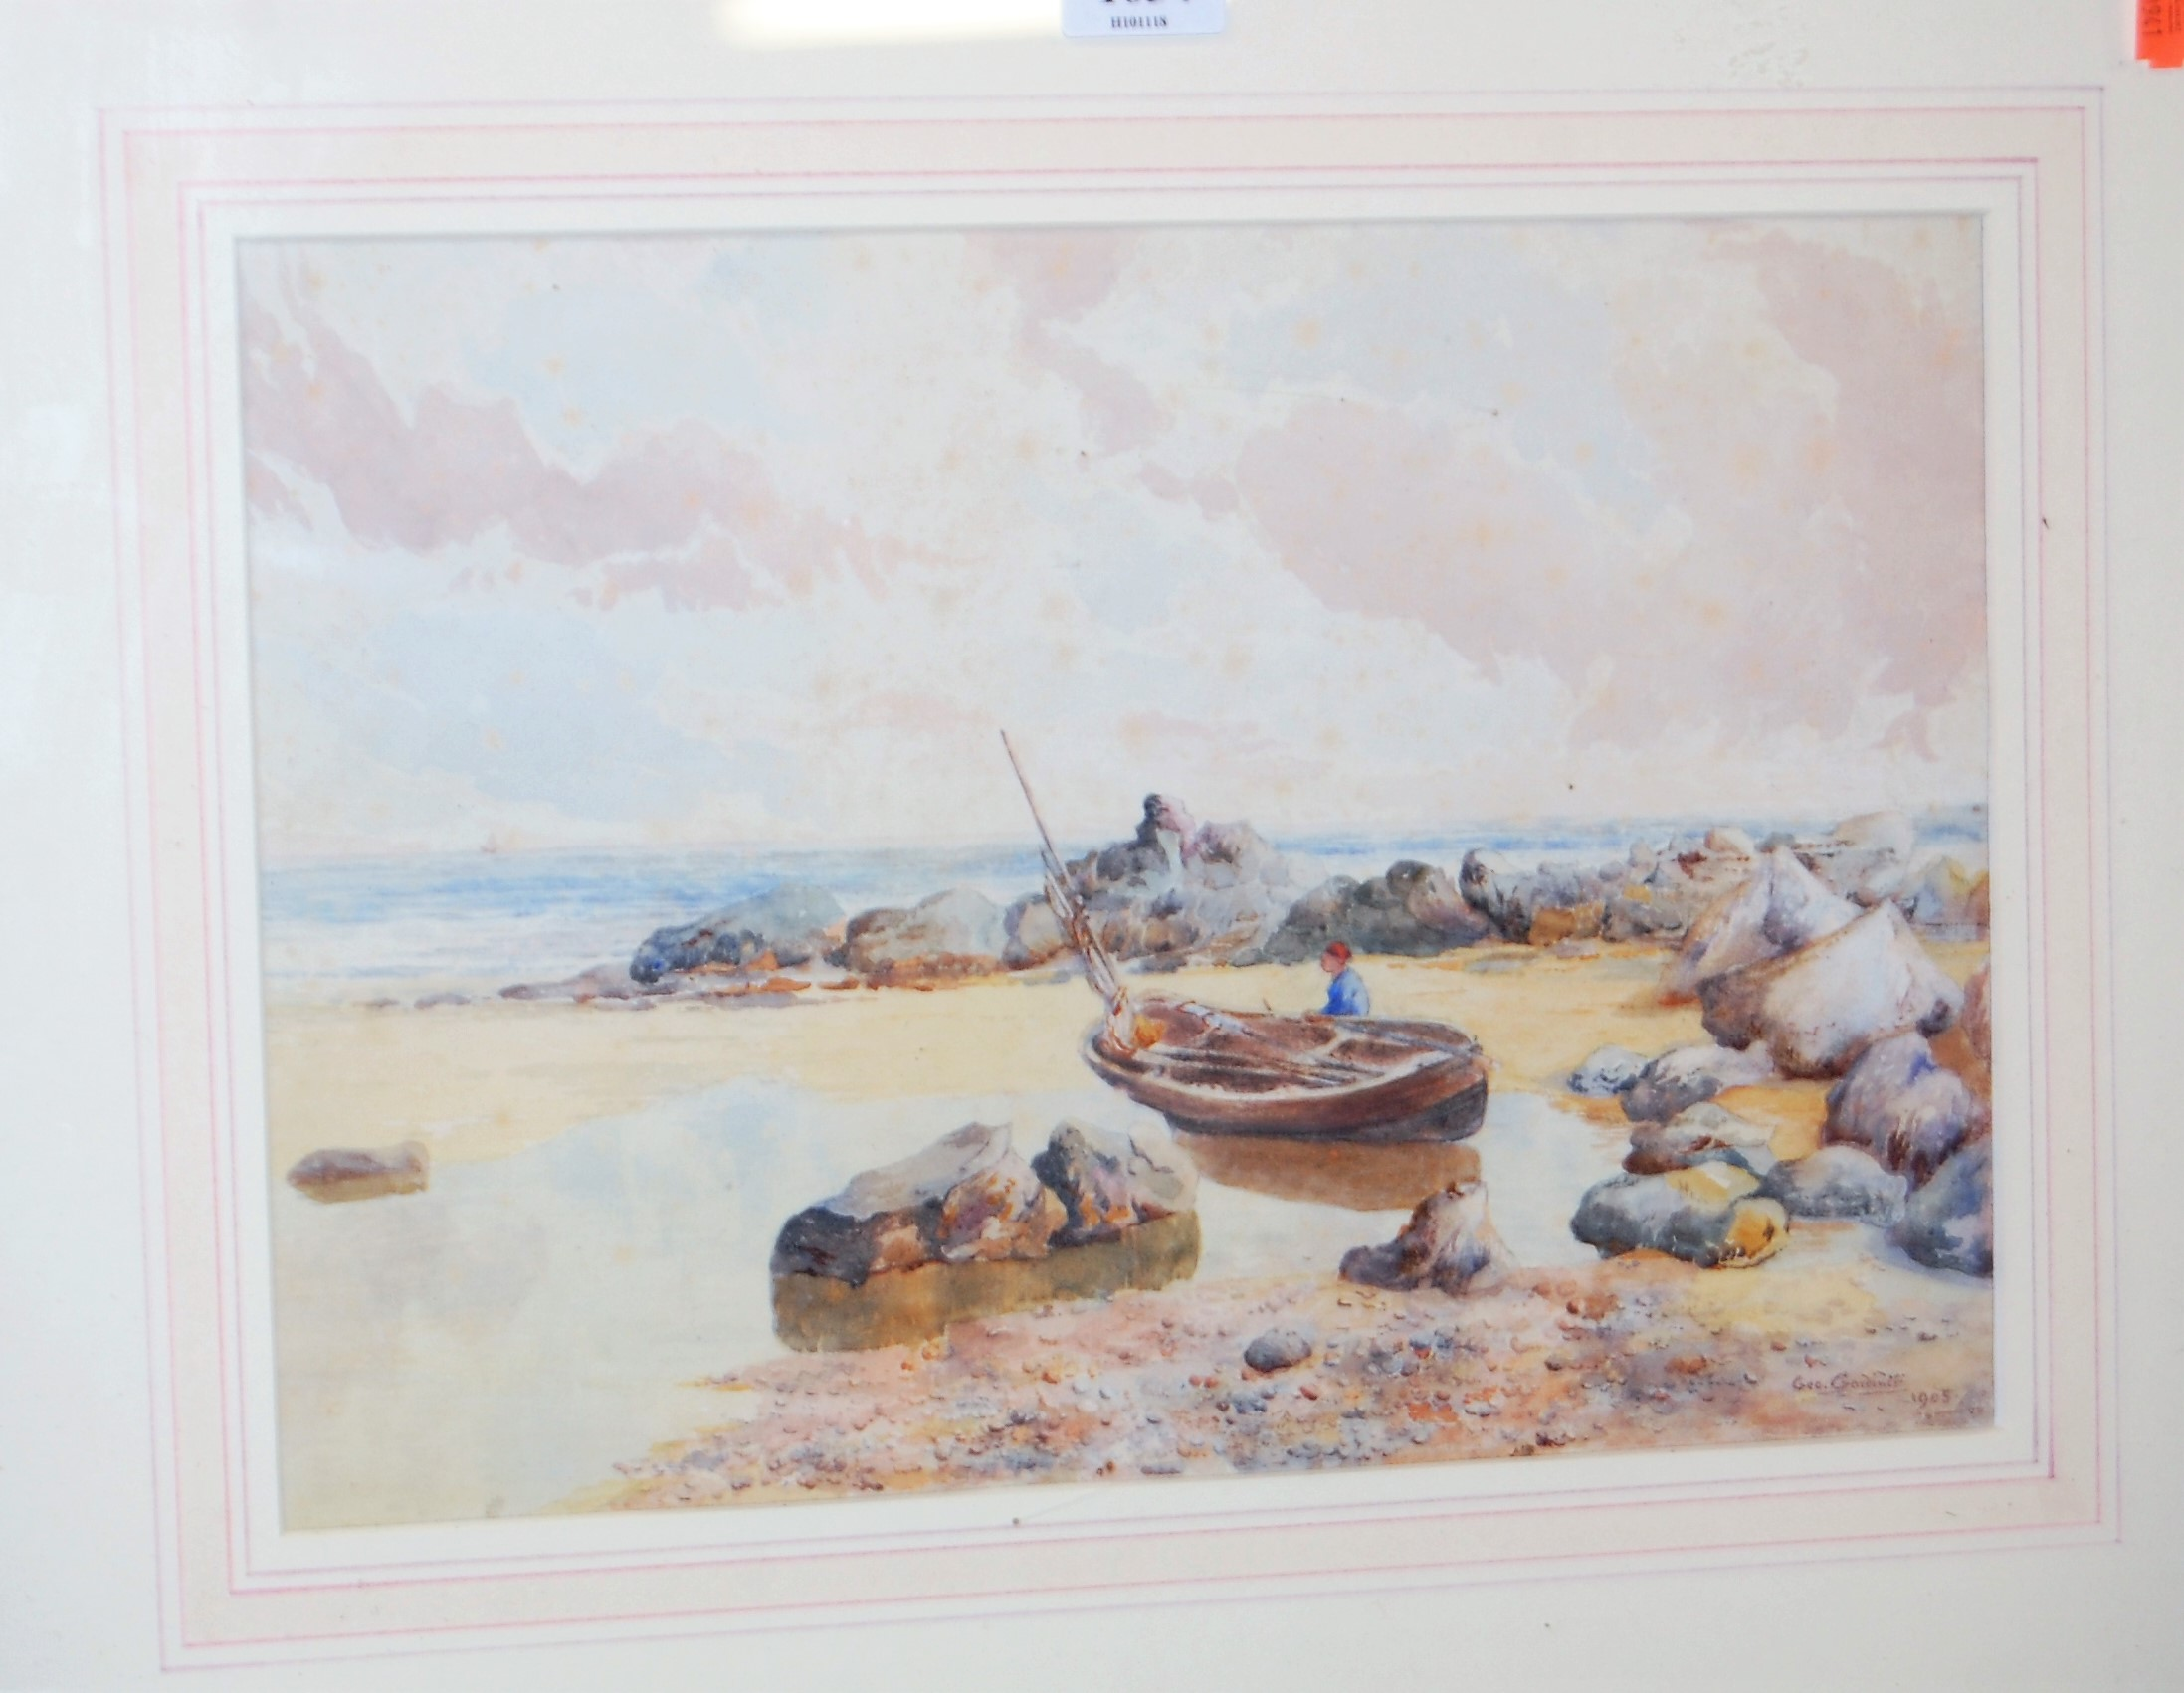 Lot 1034 - George Gardiner - Waiting for the tide, watercolour, signed and dated 1905 lower right, 23 x 33cm